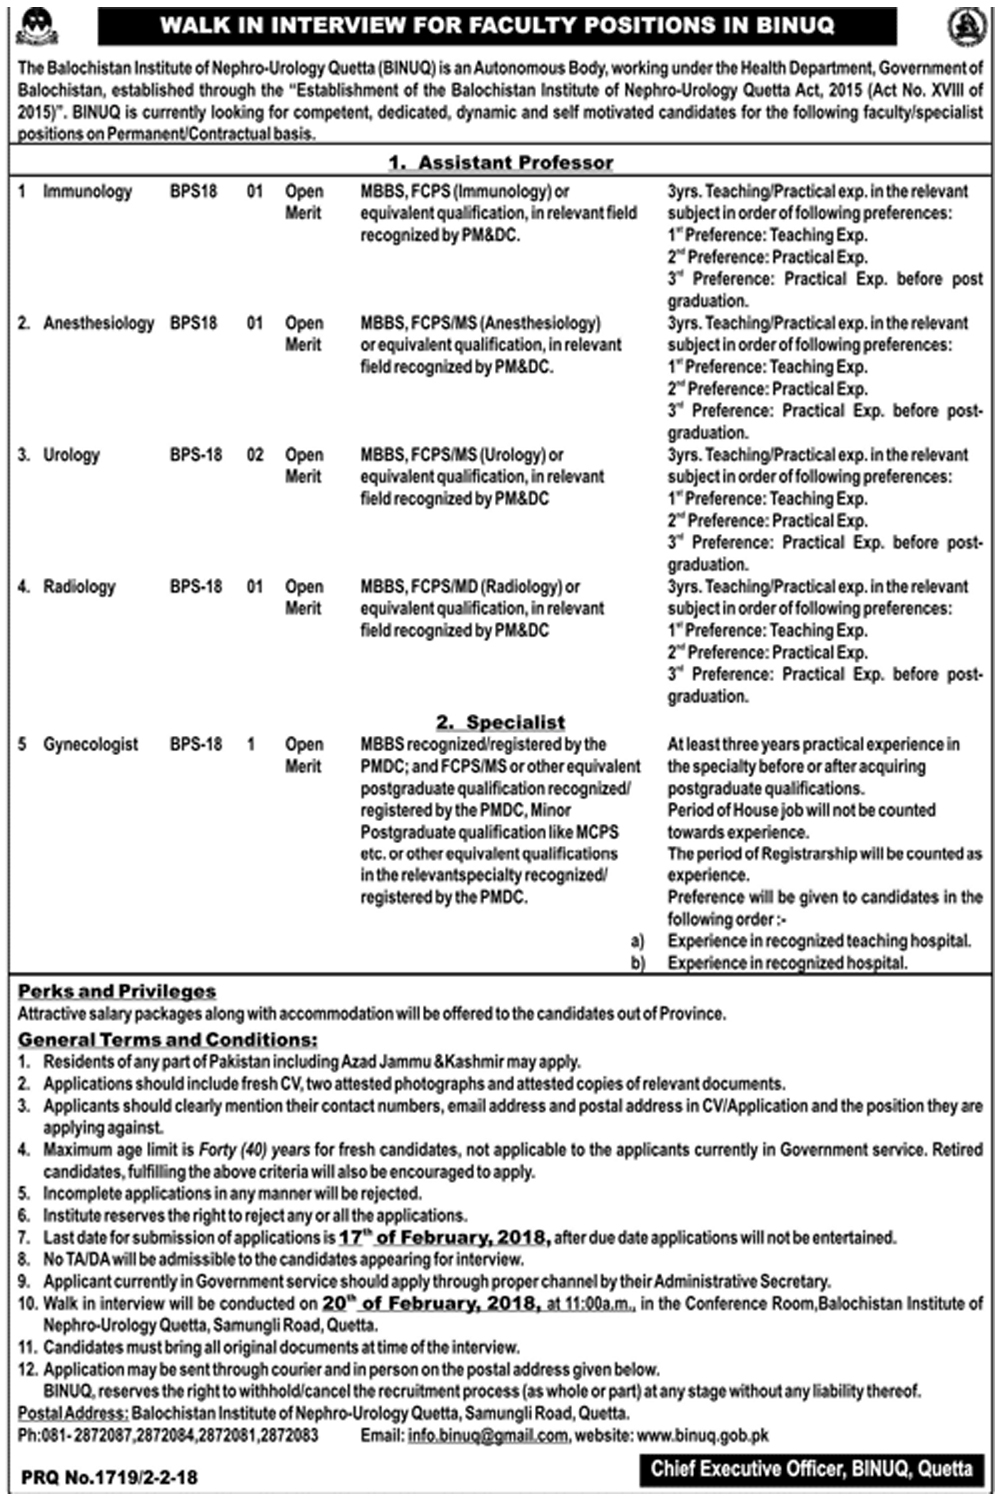 05 Jobs in Baluchistan Institute of Nephro-Urology 05th February 2018 Daily Jang Newspaper